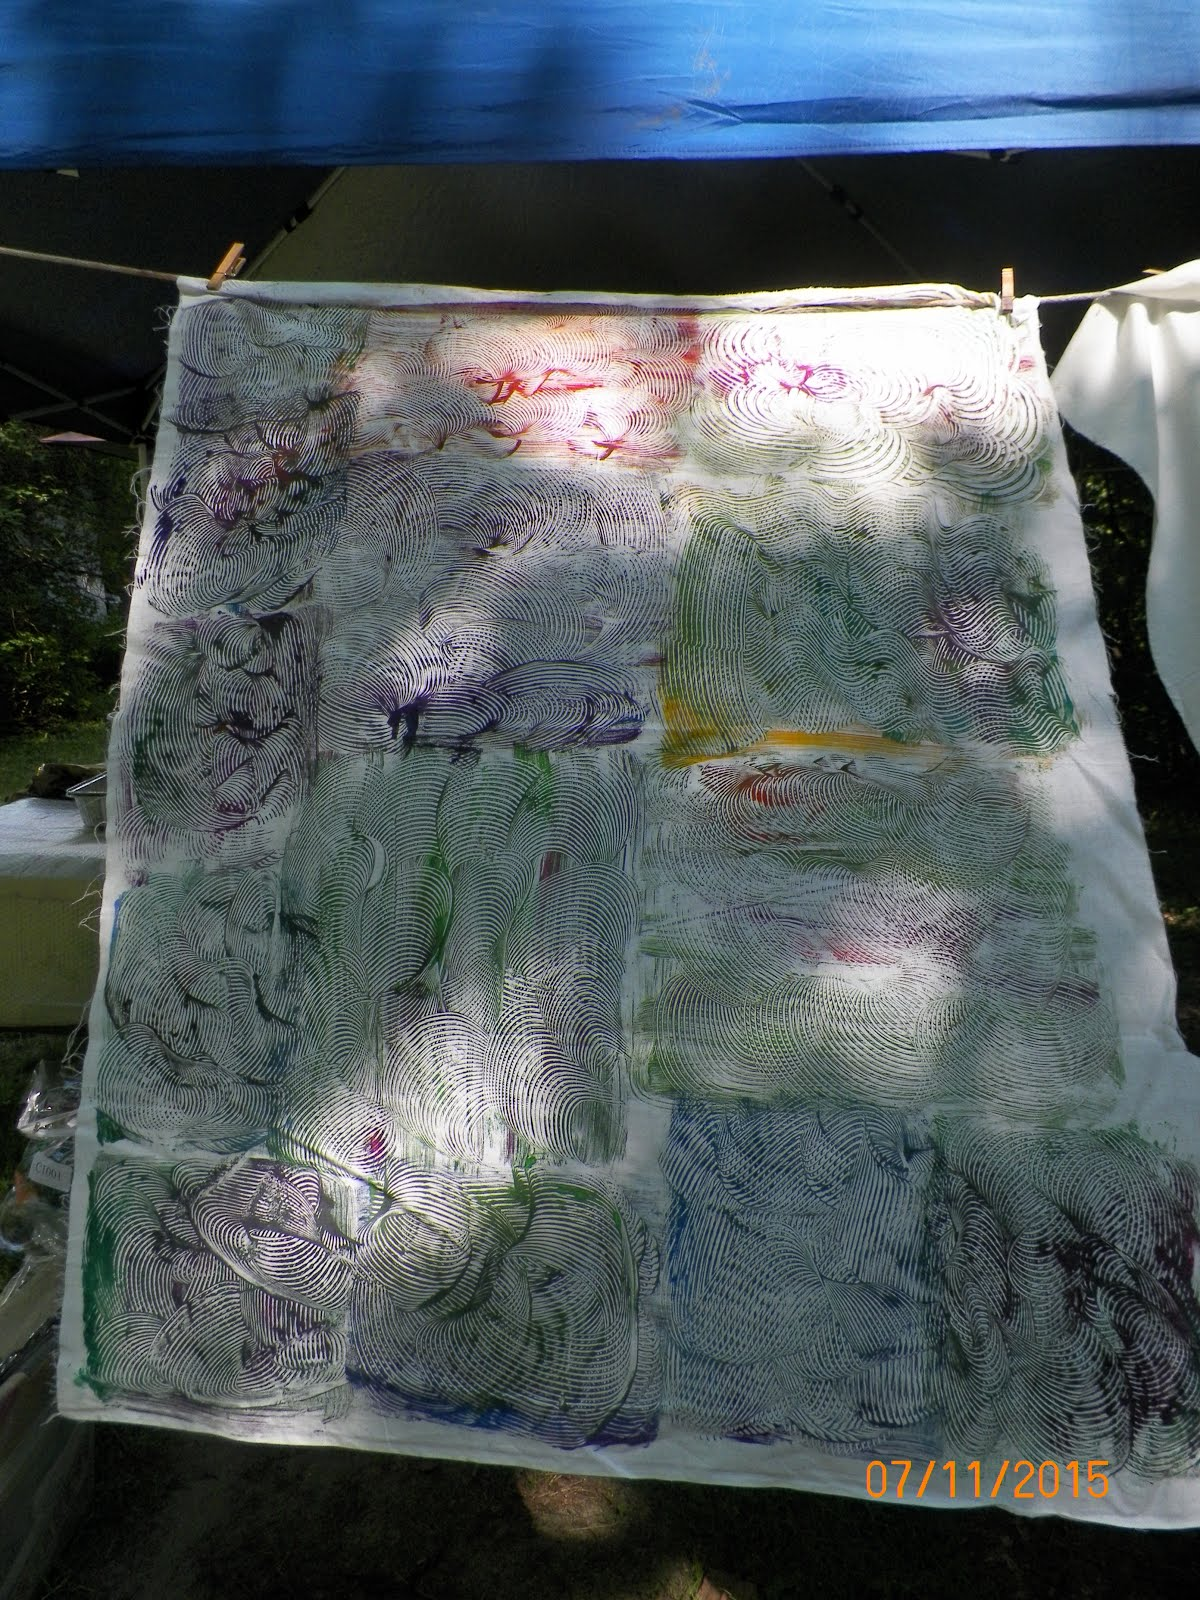 MONO PRINTING USING FABRIC PAINTS